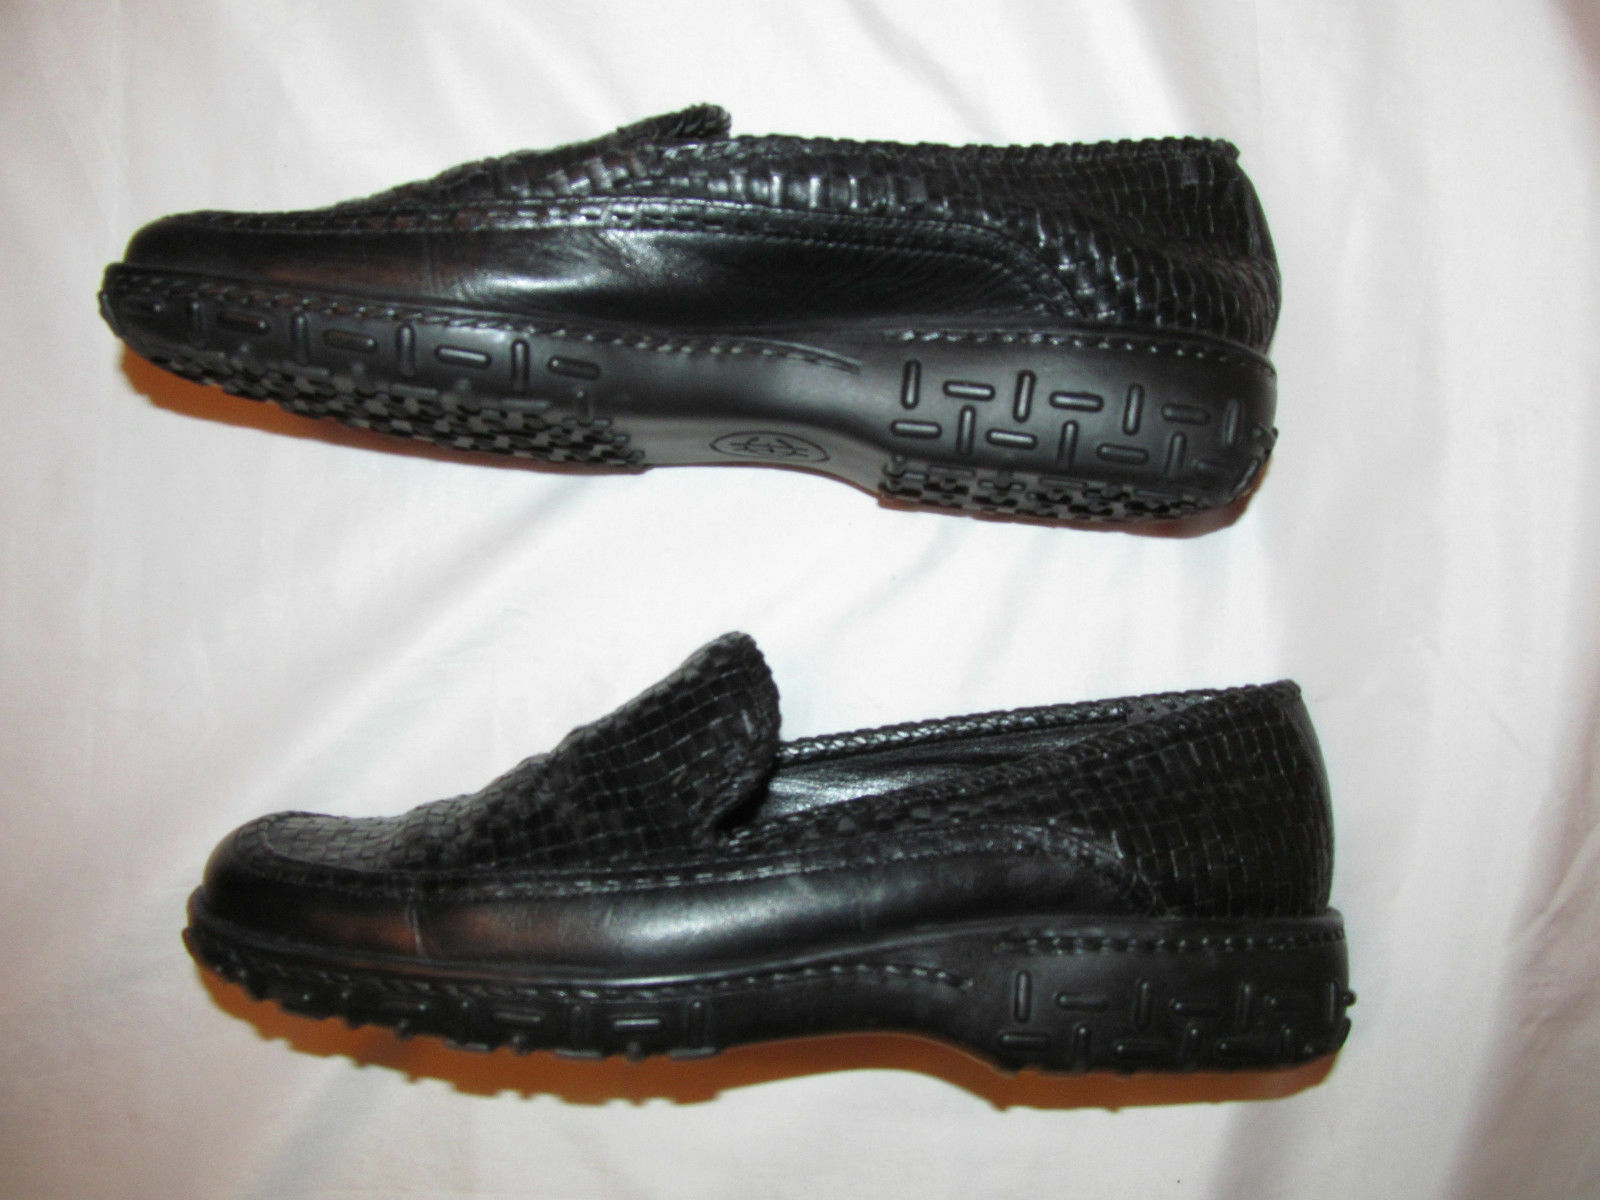 COLE HAAN COUNTRY woven leather leather loafers comfort shoes 8.5 M